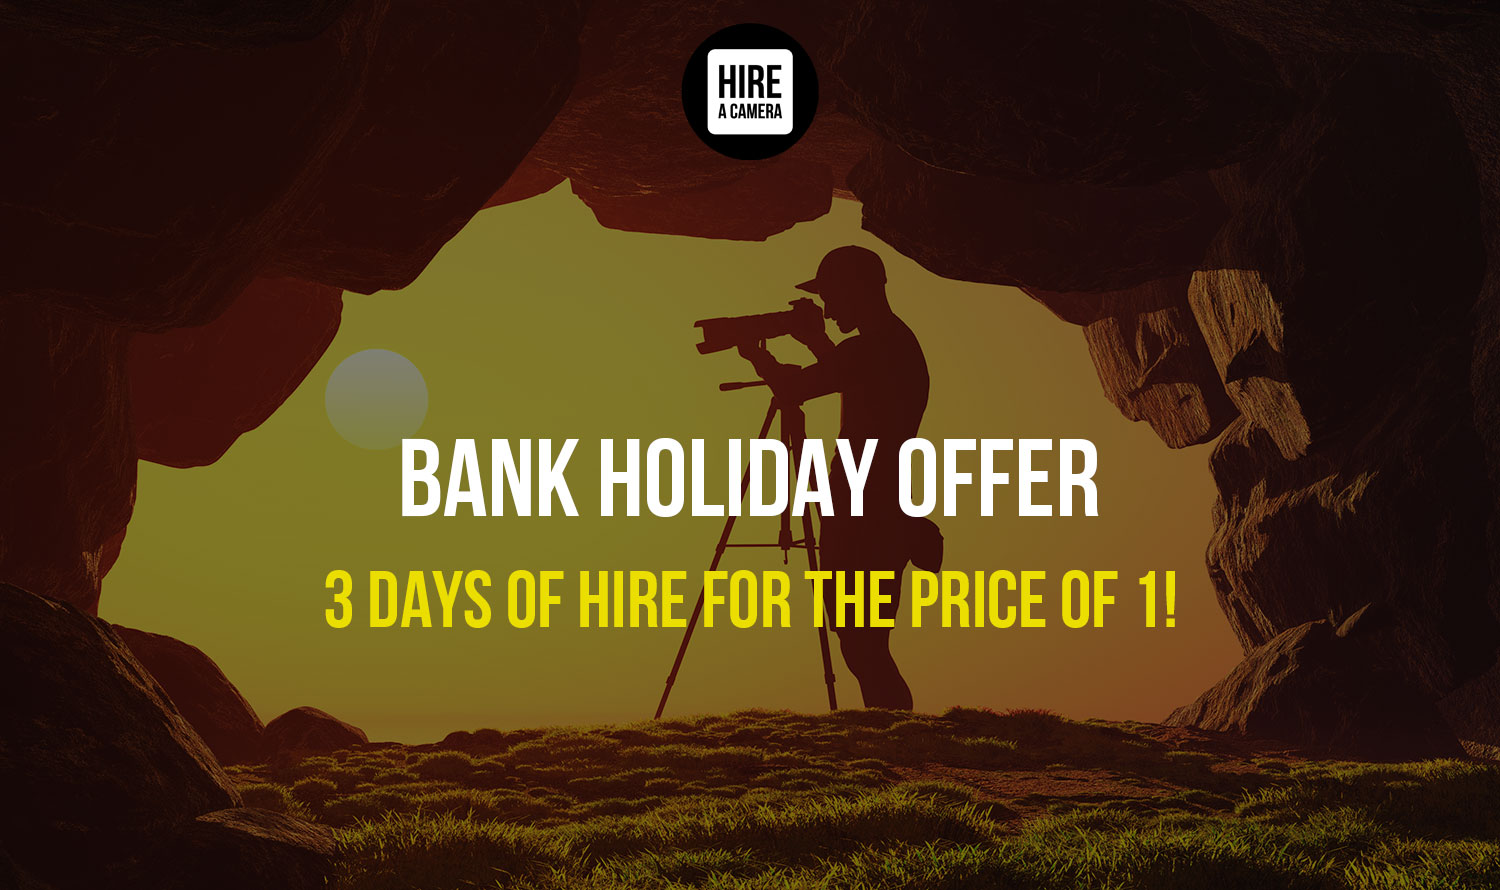 BANK HOLIDAY OFFER: Get 3 Days of Hire for The Price of 1!